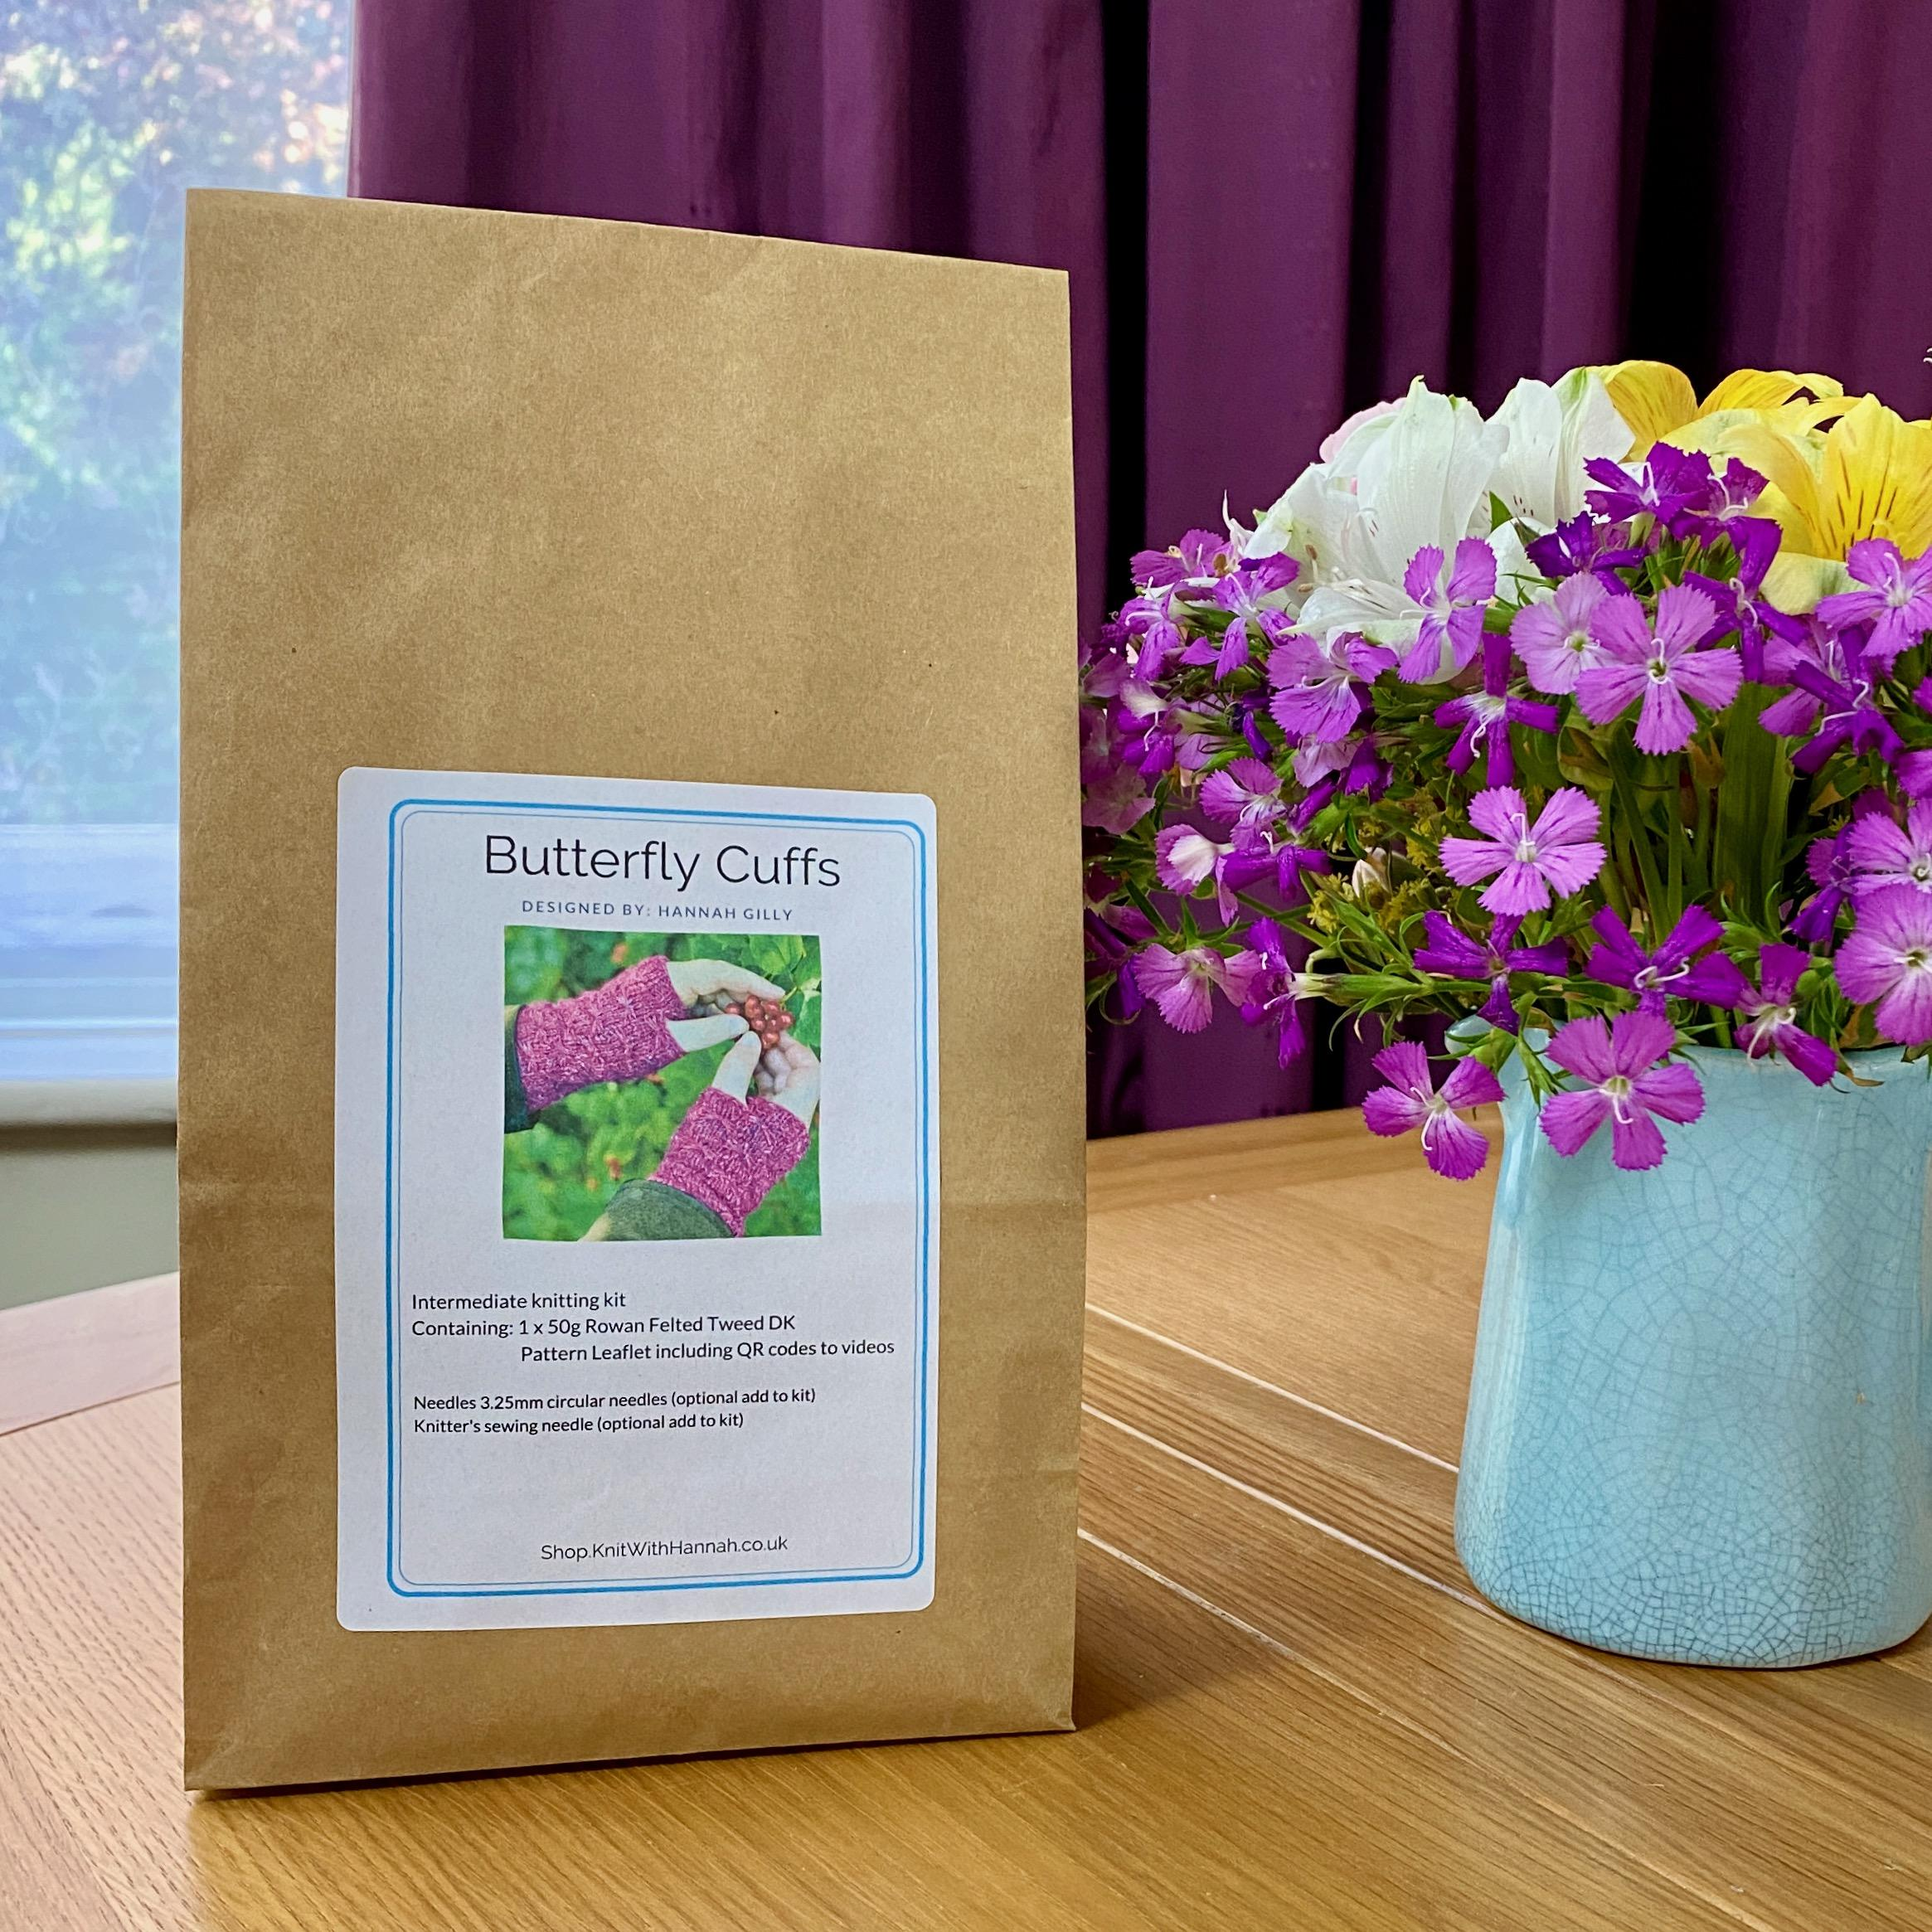 bagged knitting kit for pink butterfly cuffs kit, sitting on table with jug of pink white and yellow summer flowers